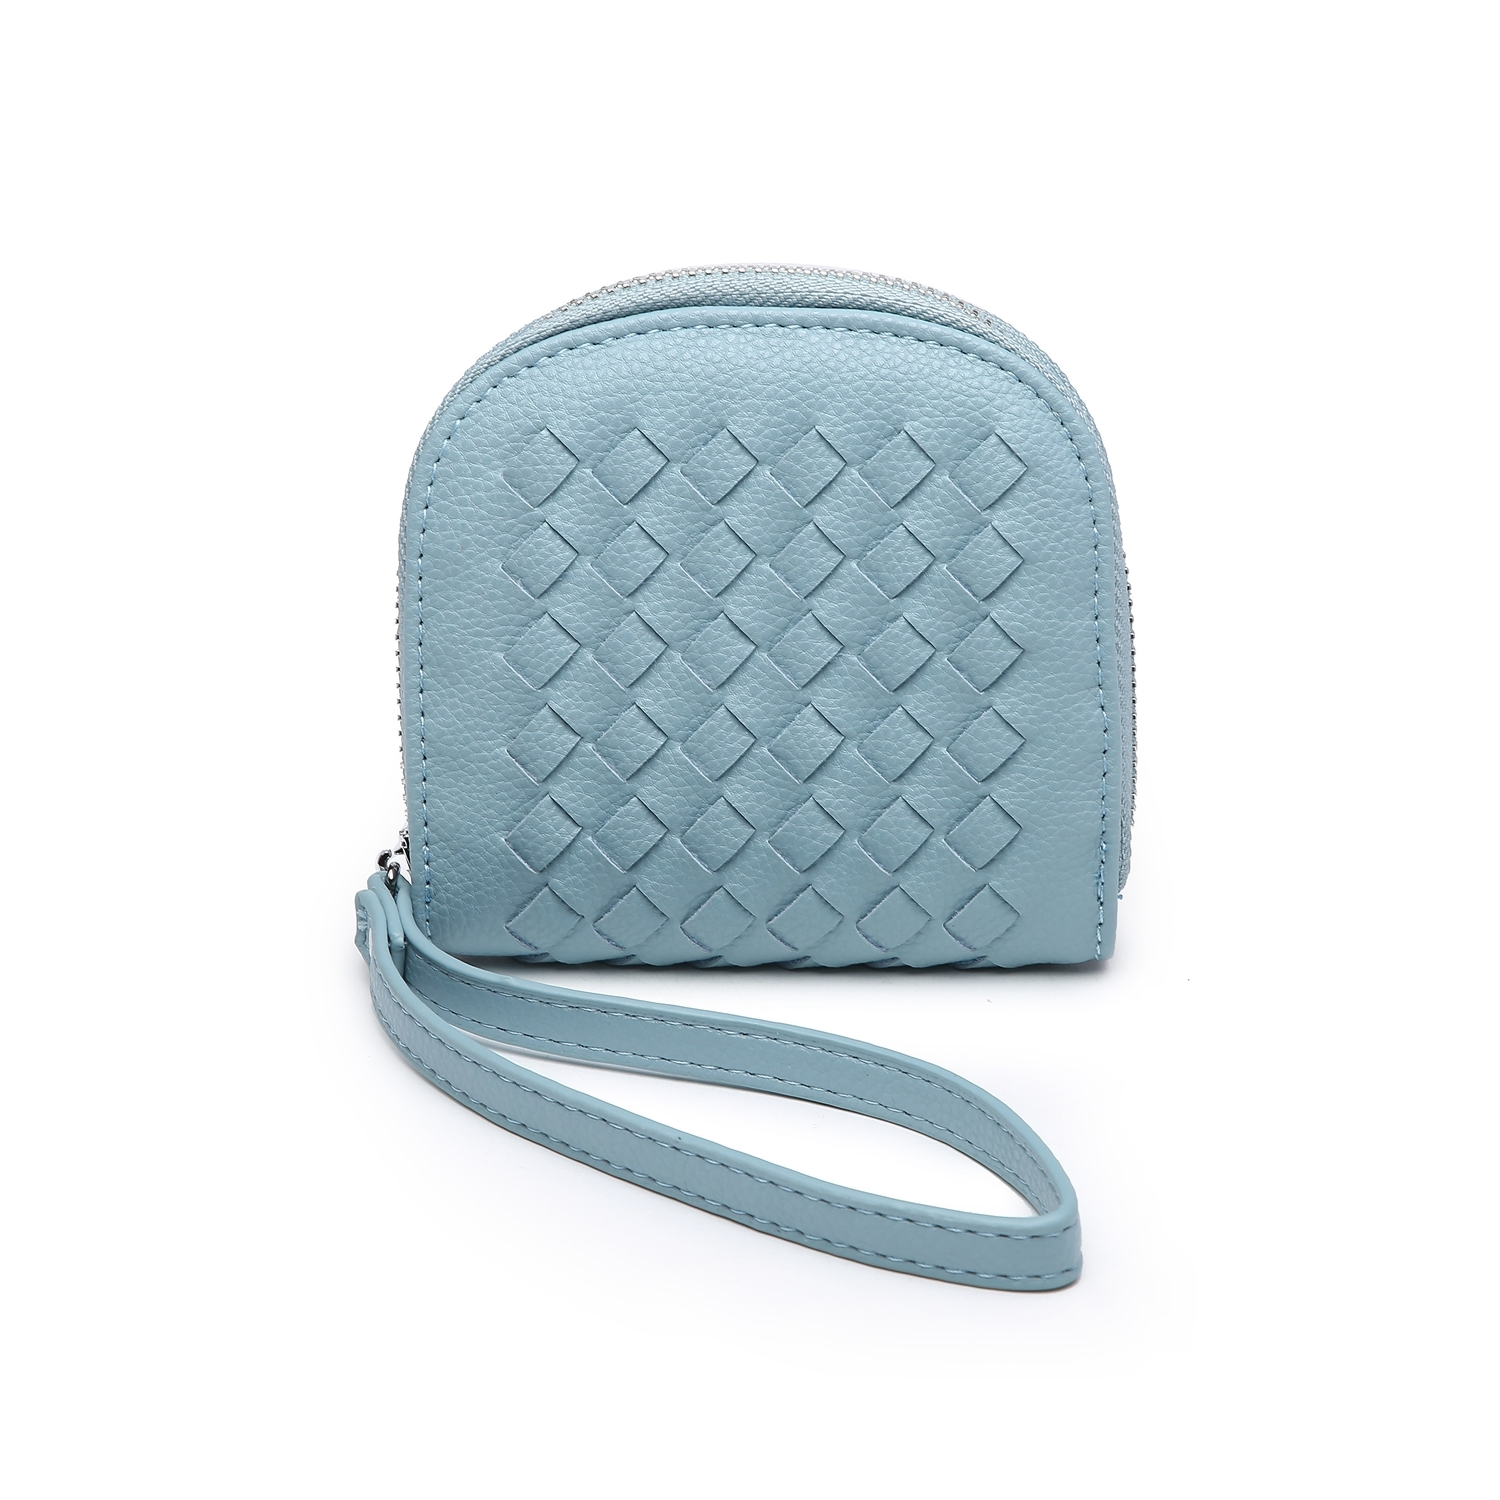 Mini Quilted Clutch Purse - Duck Egg